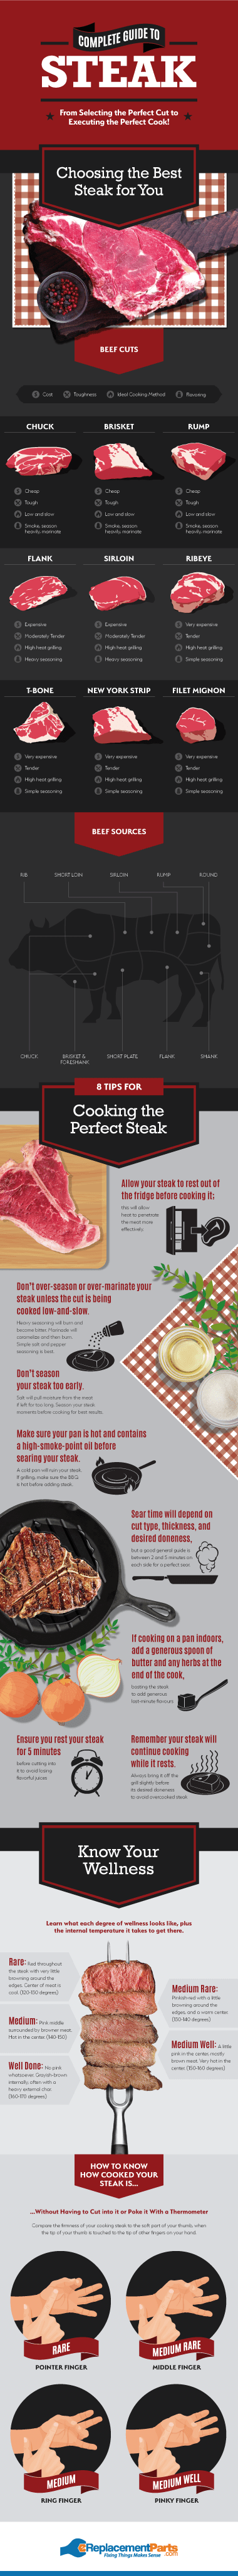 steak guide with description of beef sources and cooking tips